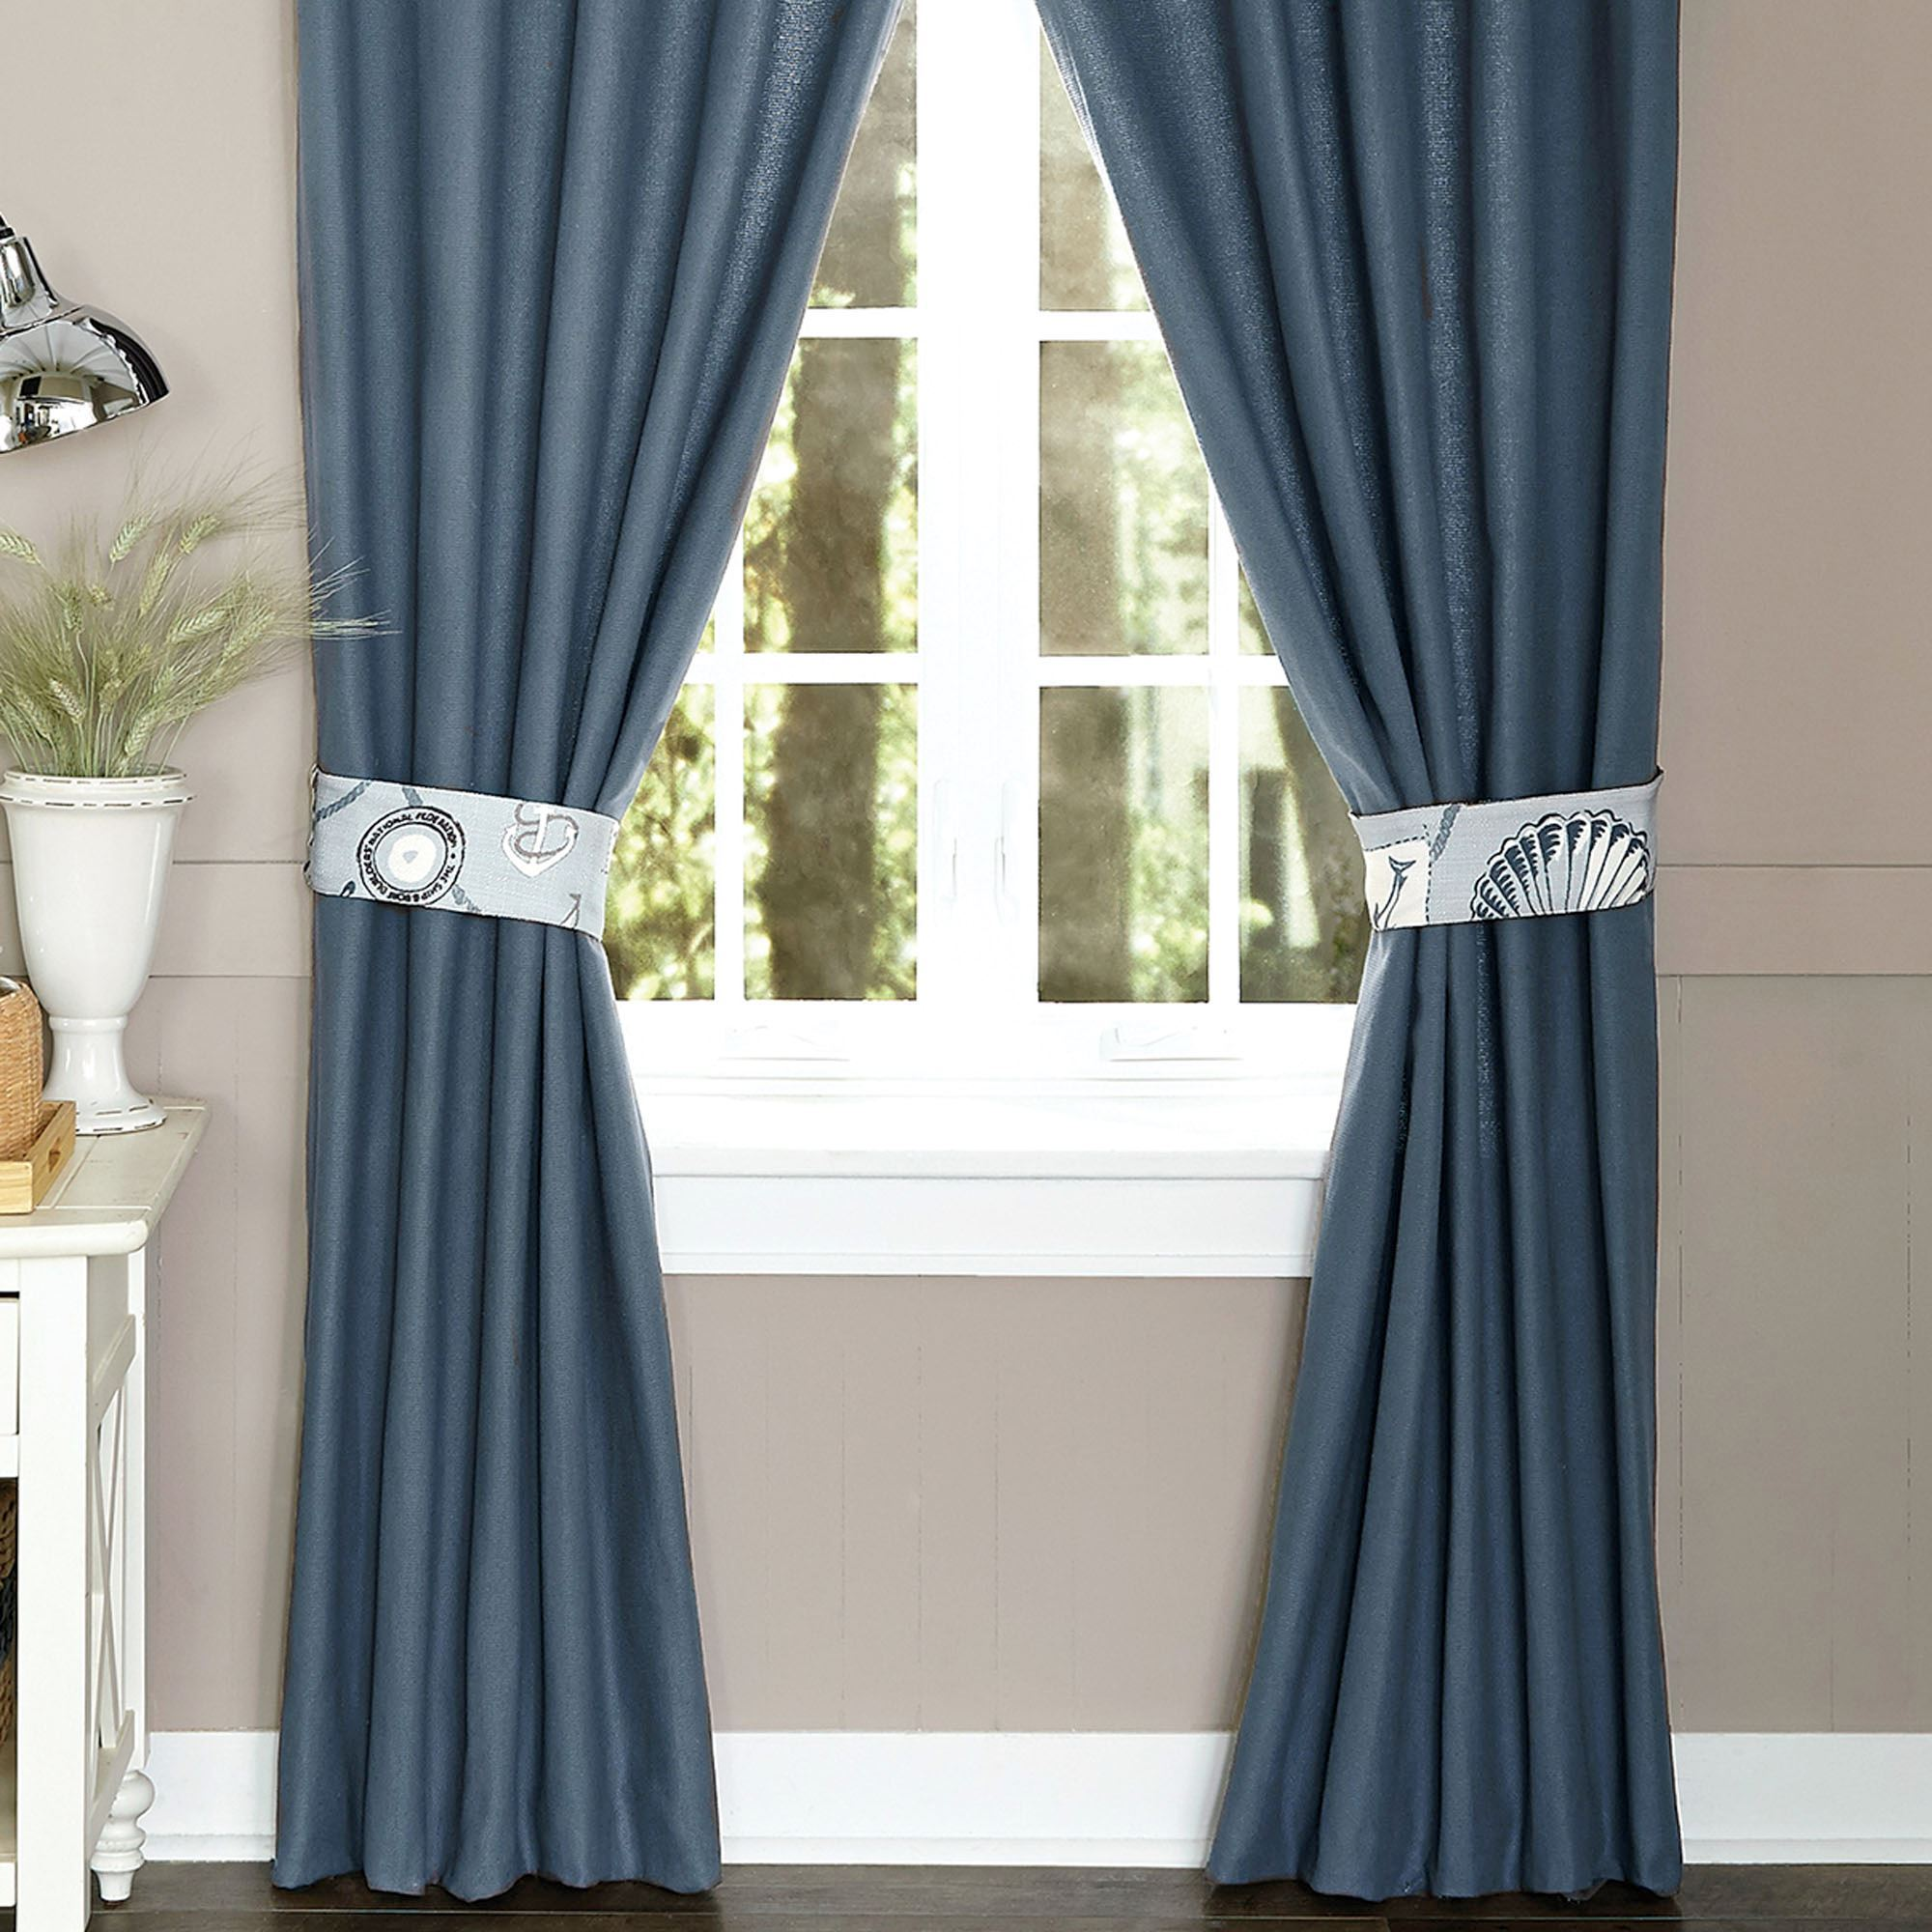 everyone and treatments window image valances design match curtains decorations blackout for nautical amazing of idea